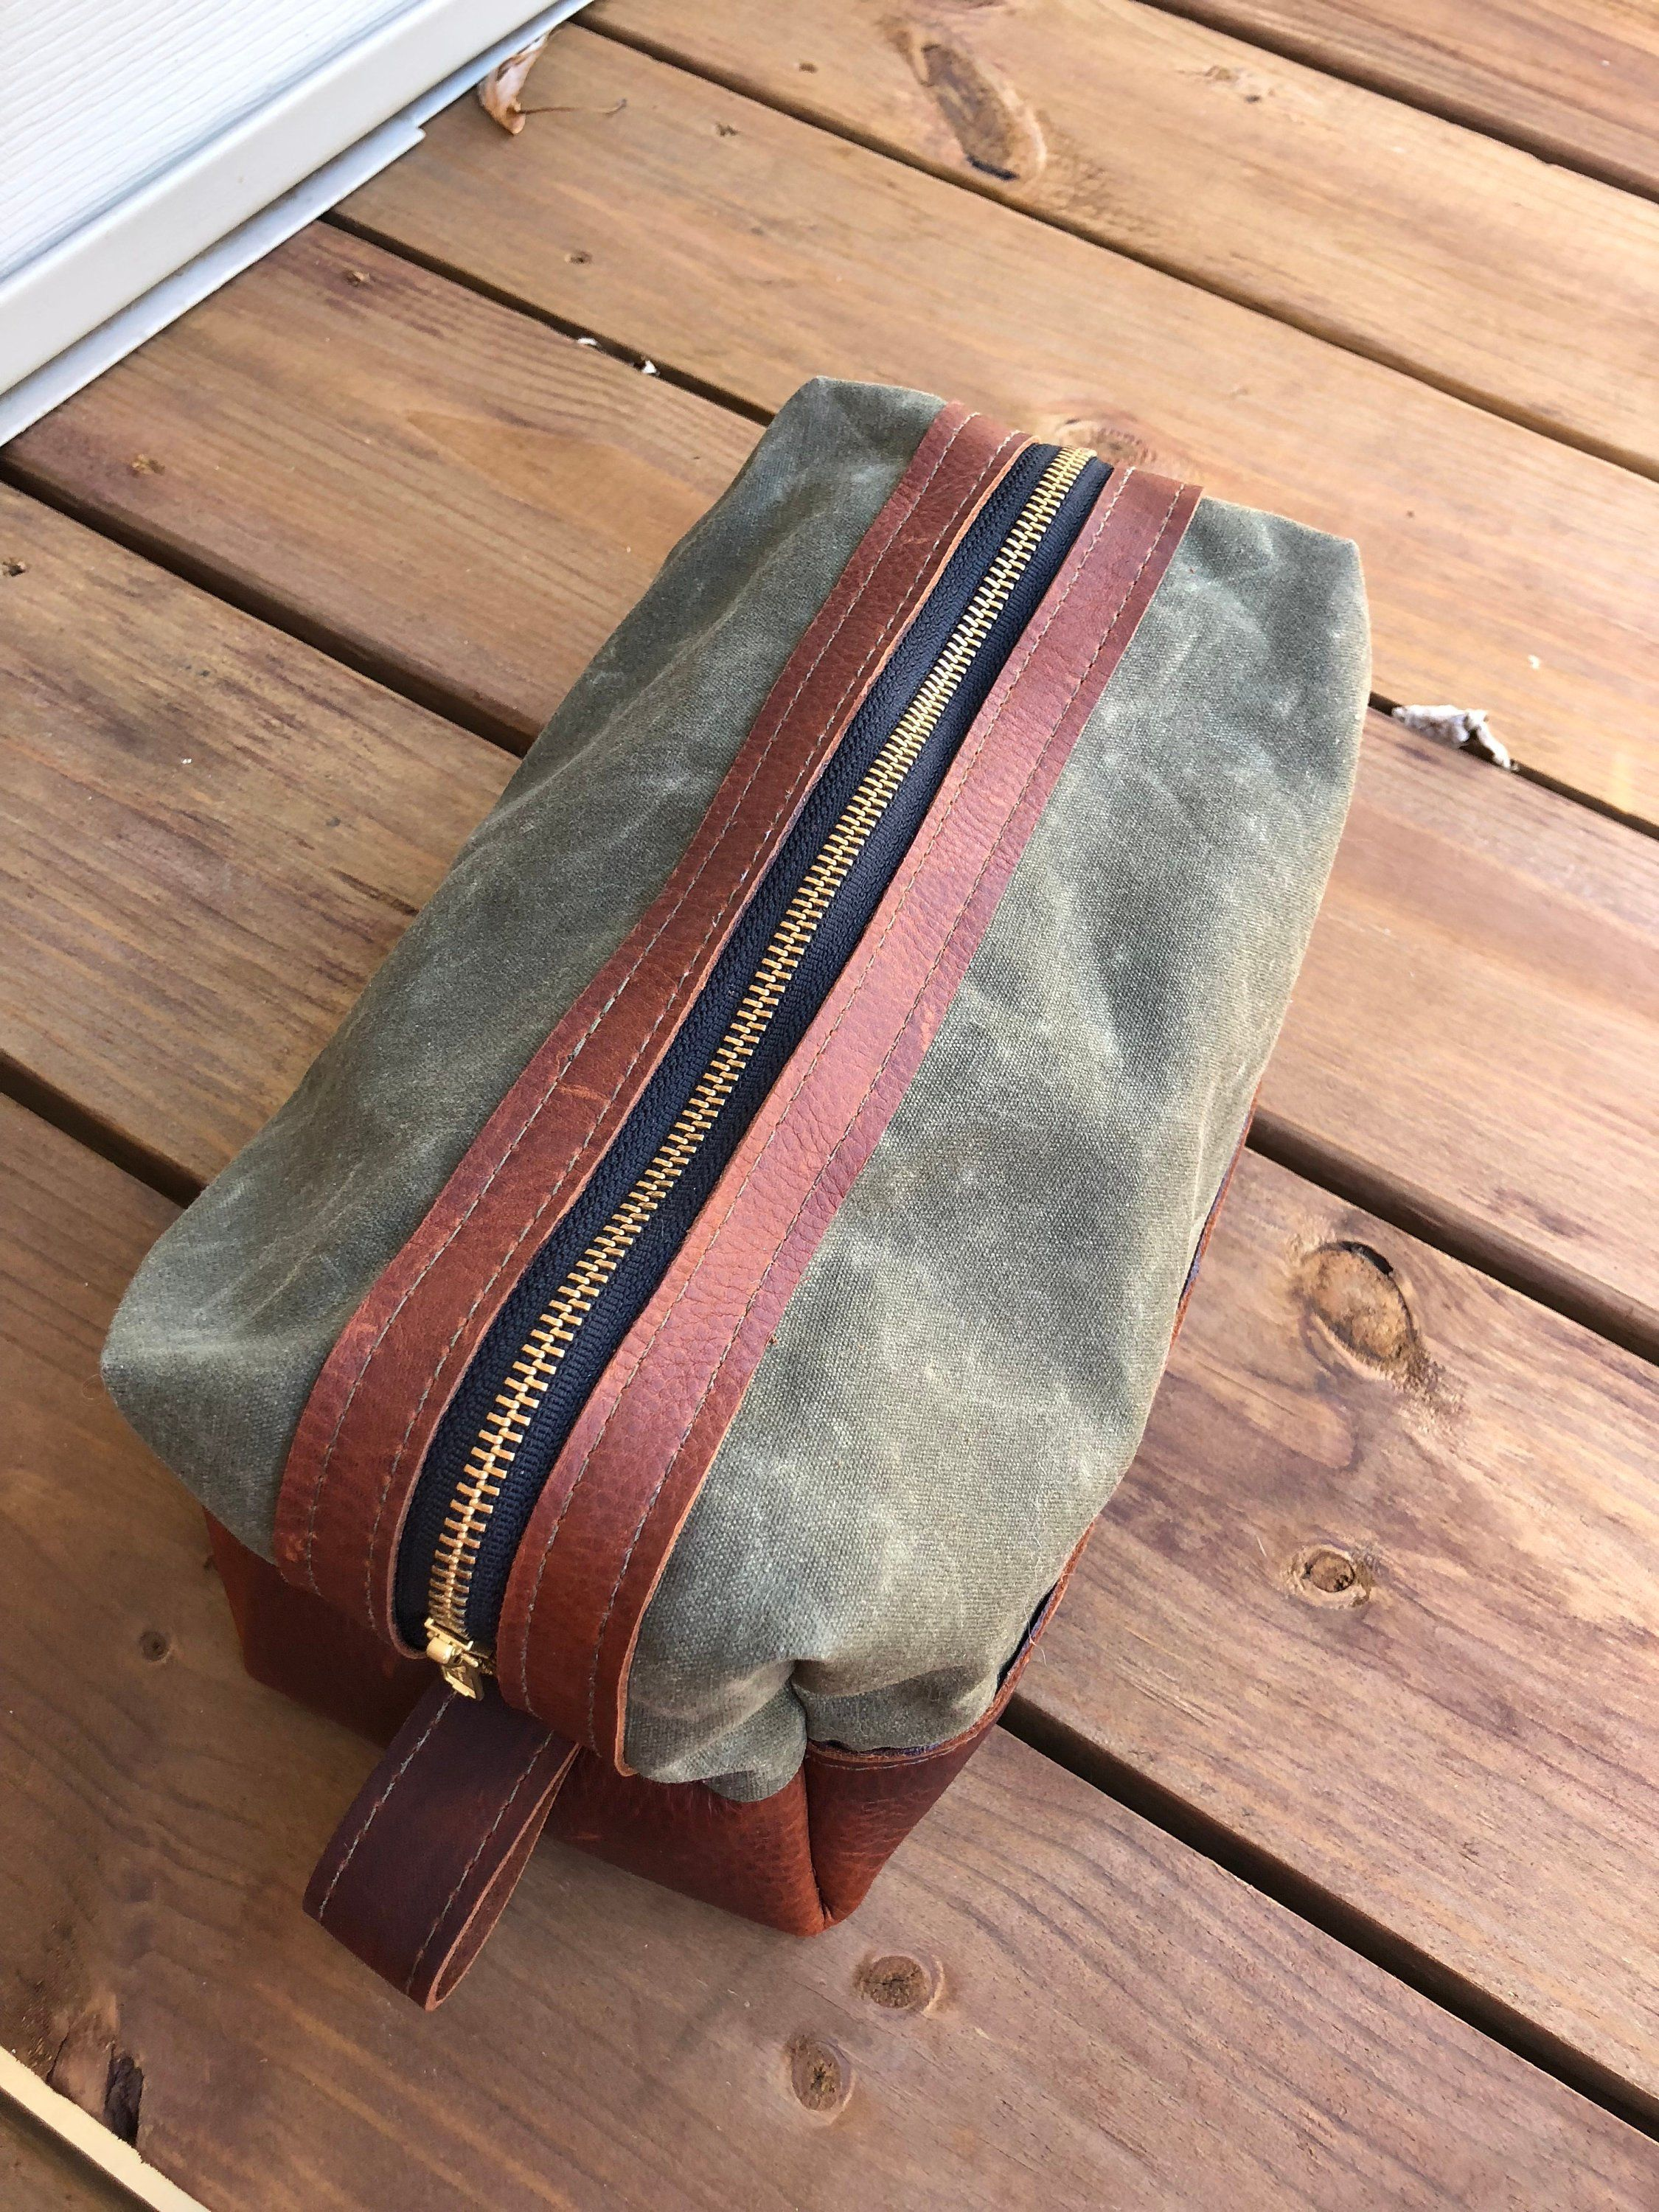 Leather Waxed Canvas Zippered Dopp Kit with Buffalo Plaid Ditty Bag  Toiletry Bag Mens Gift by ac8553ec764e1